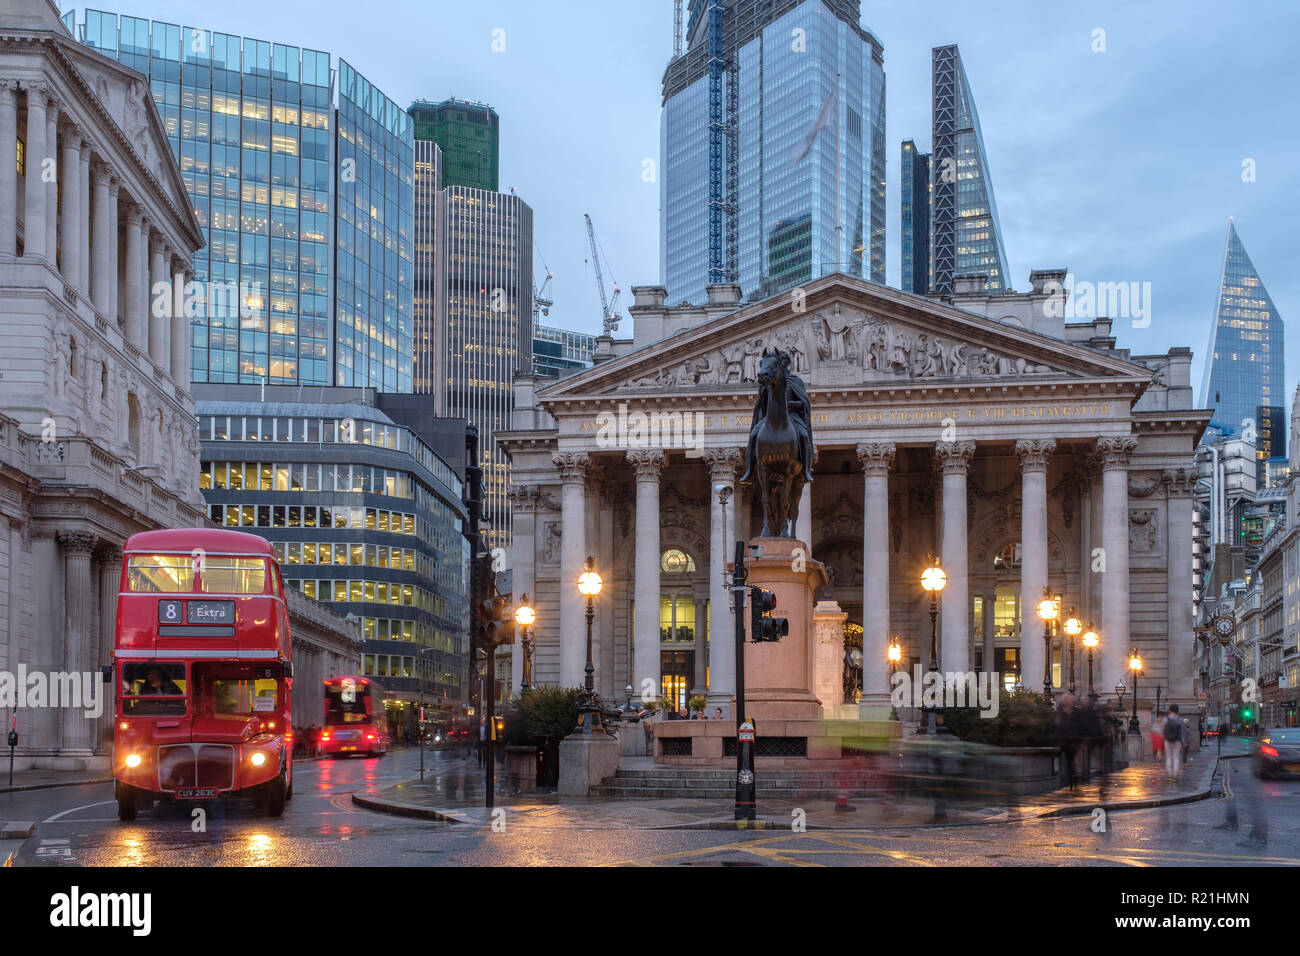 England, City of London- The Royal exchange building at night - Stock Image